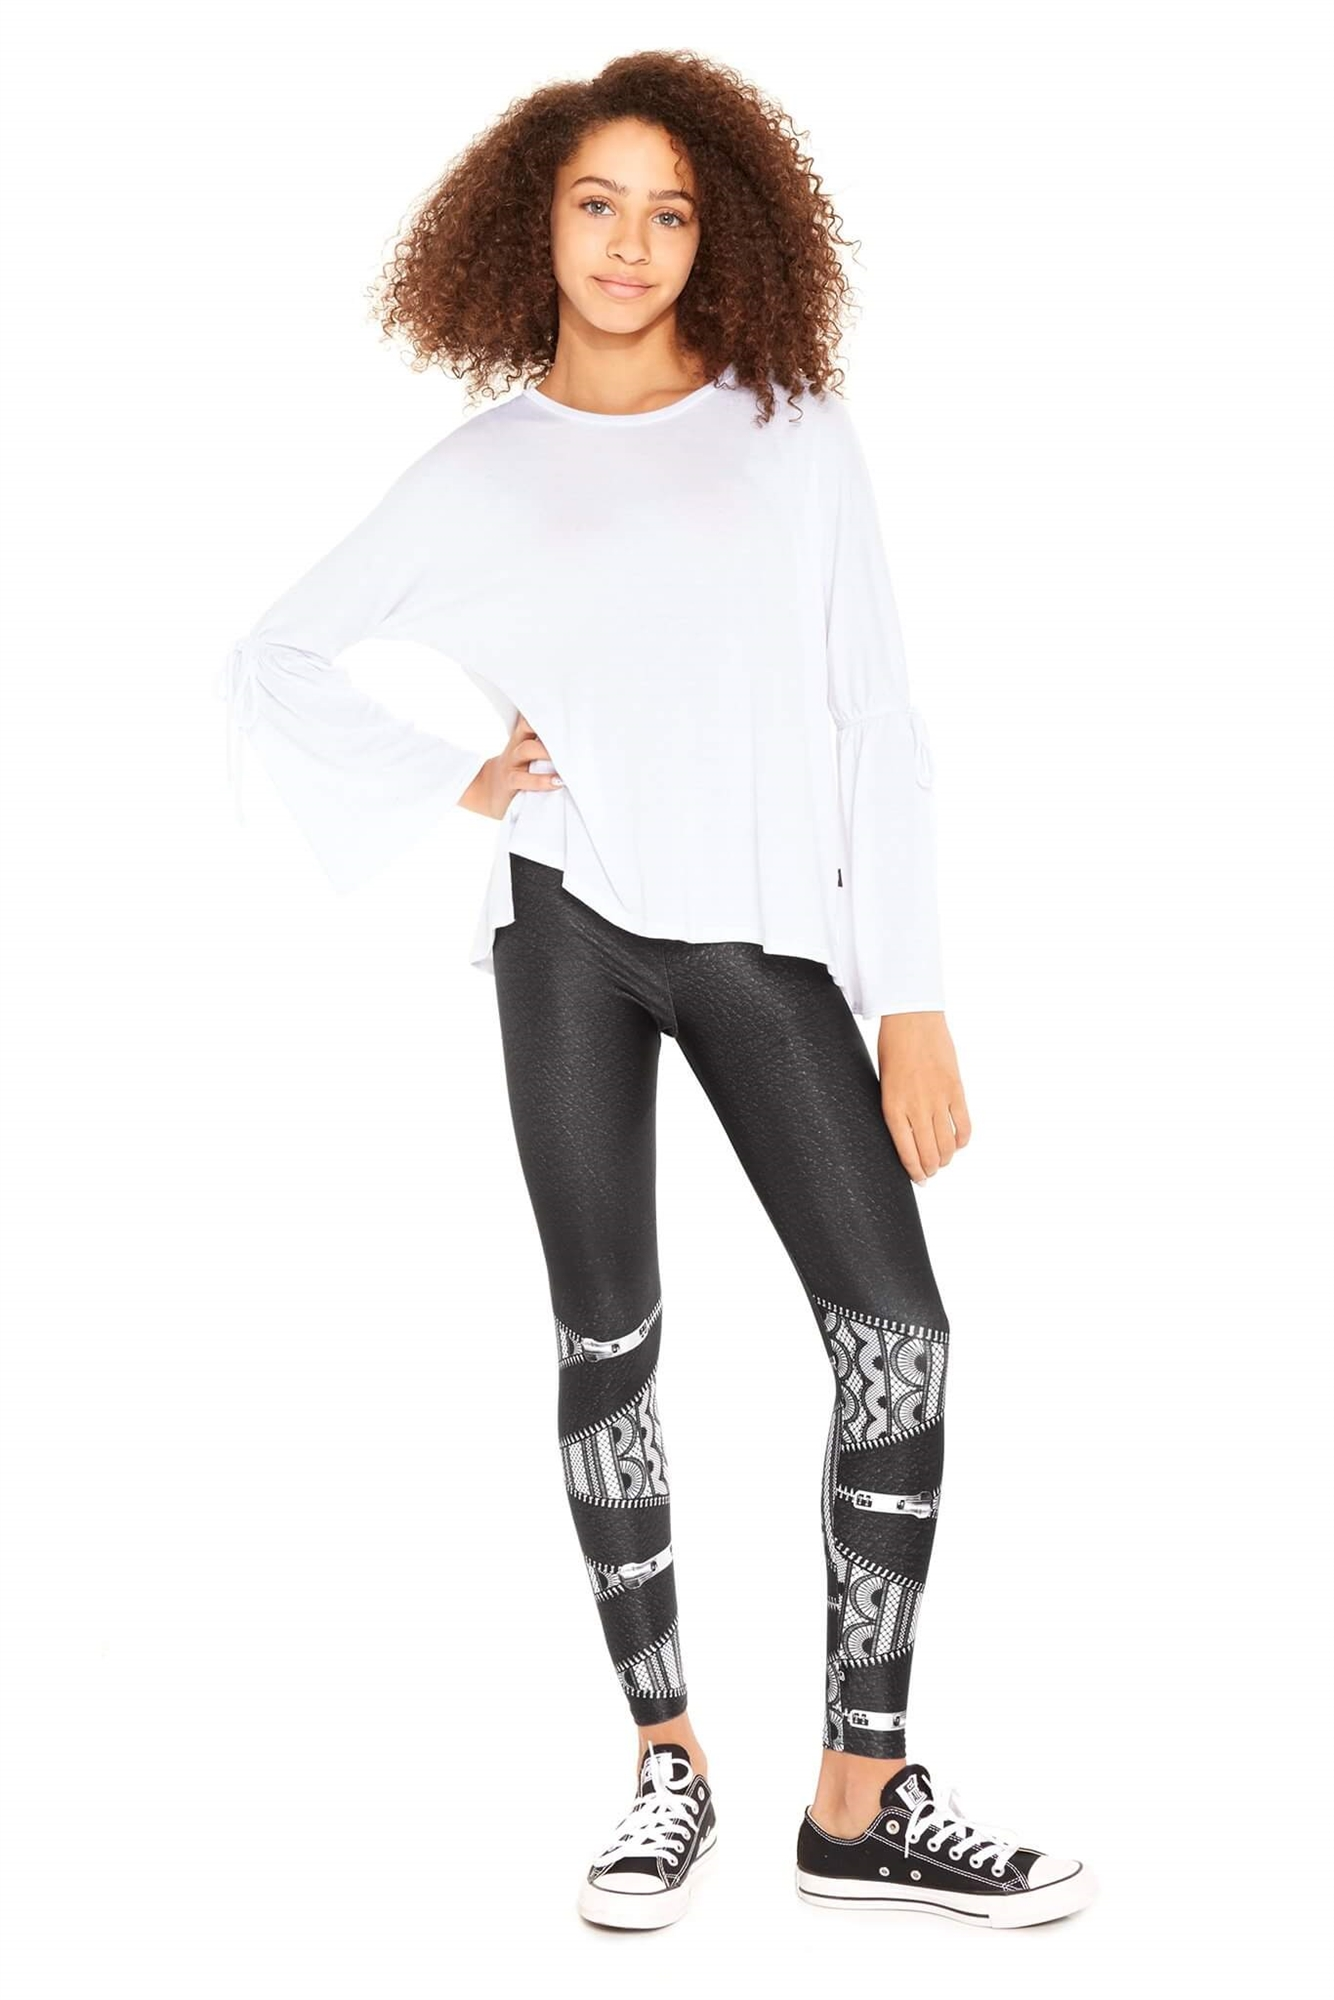 Terez Womens Lace Up Legging